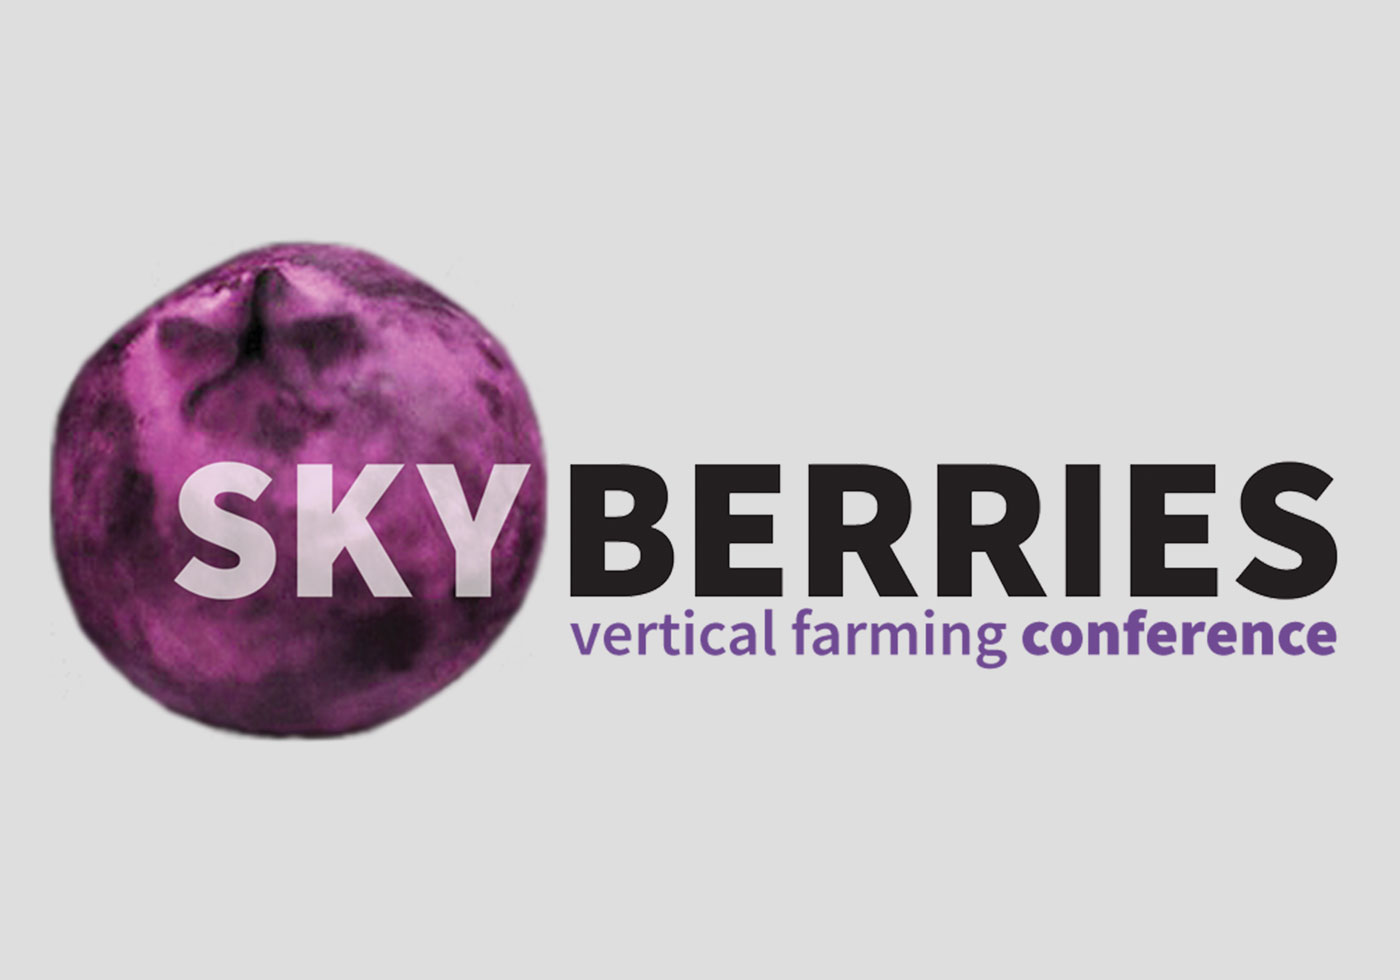 Skyberries